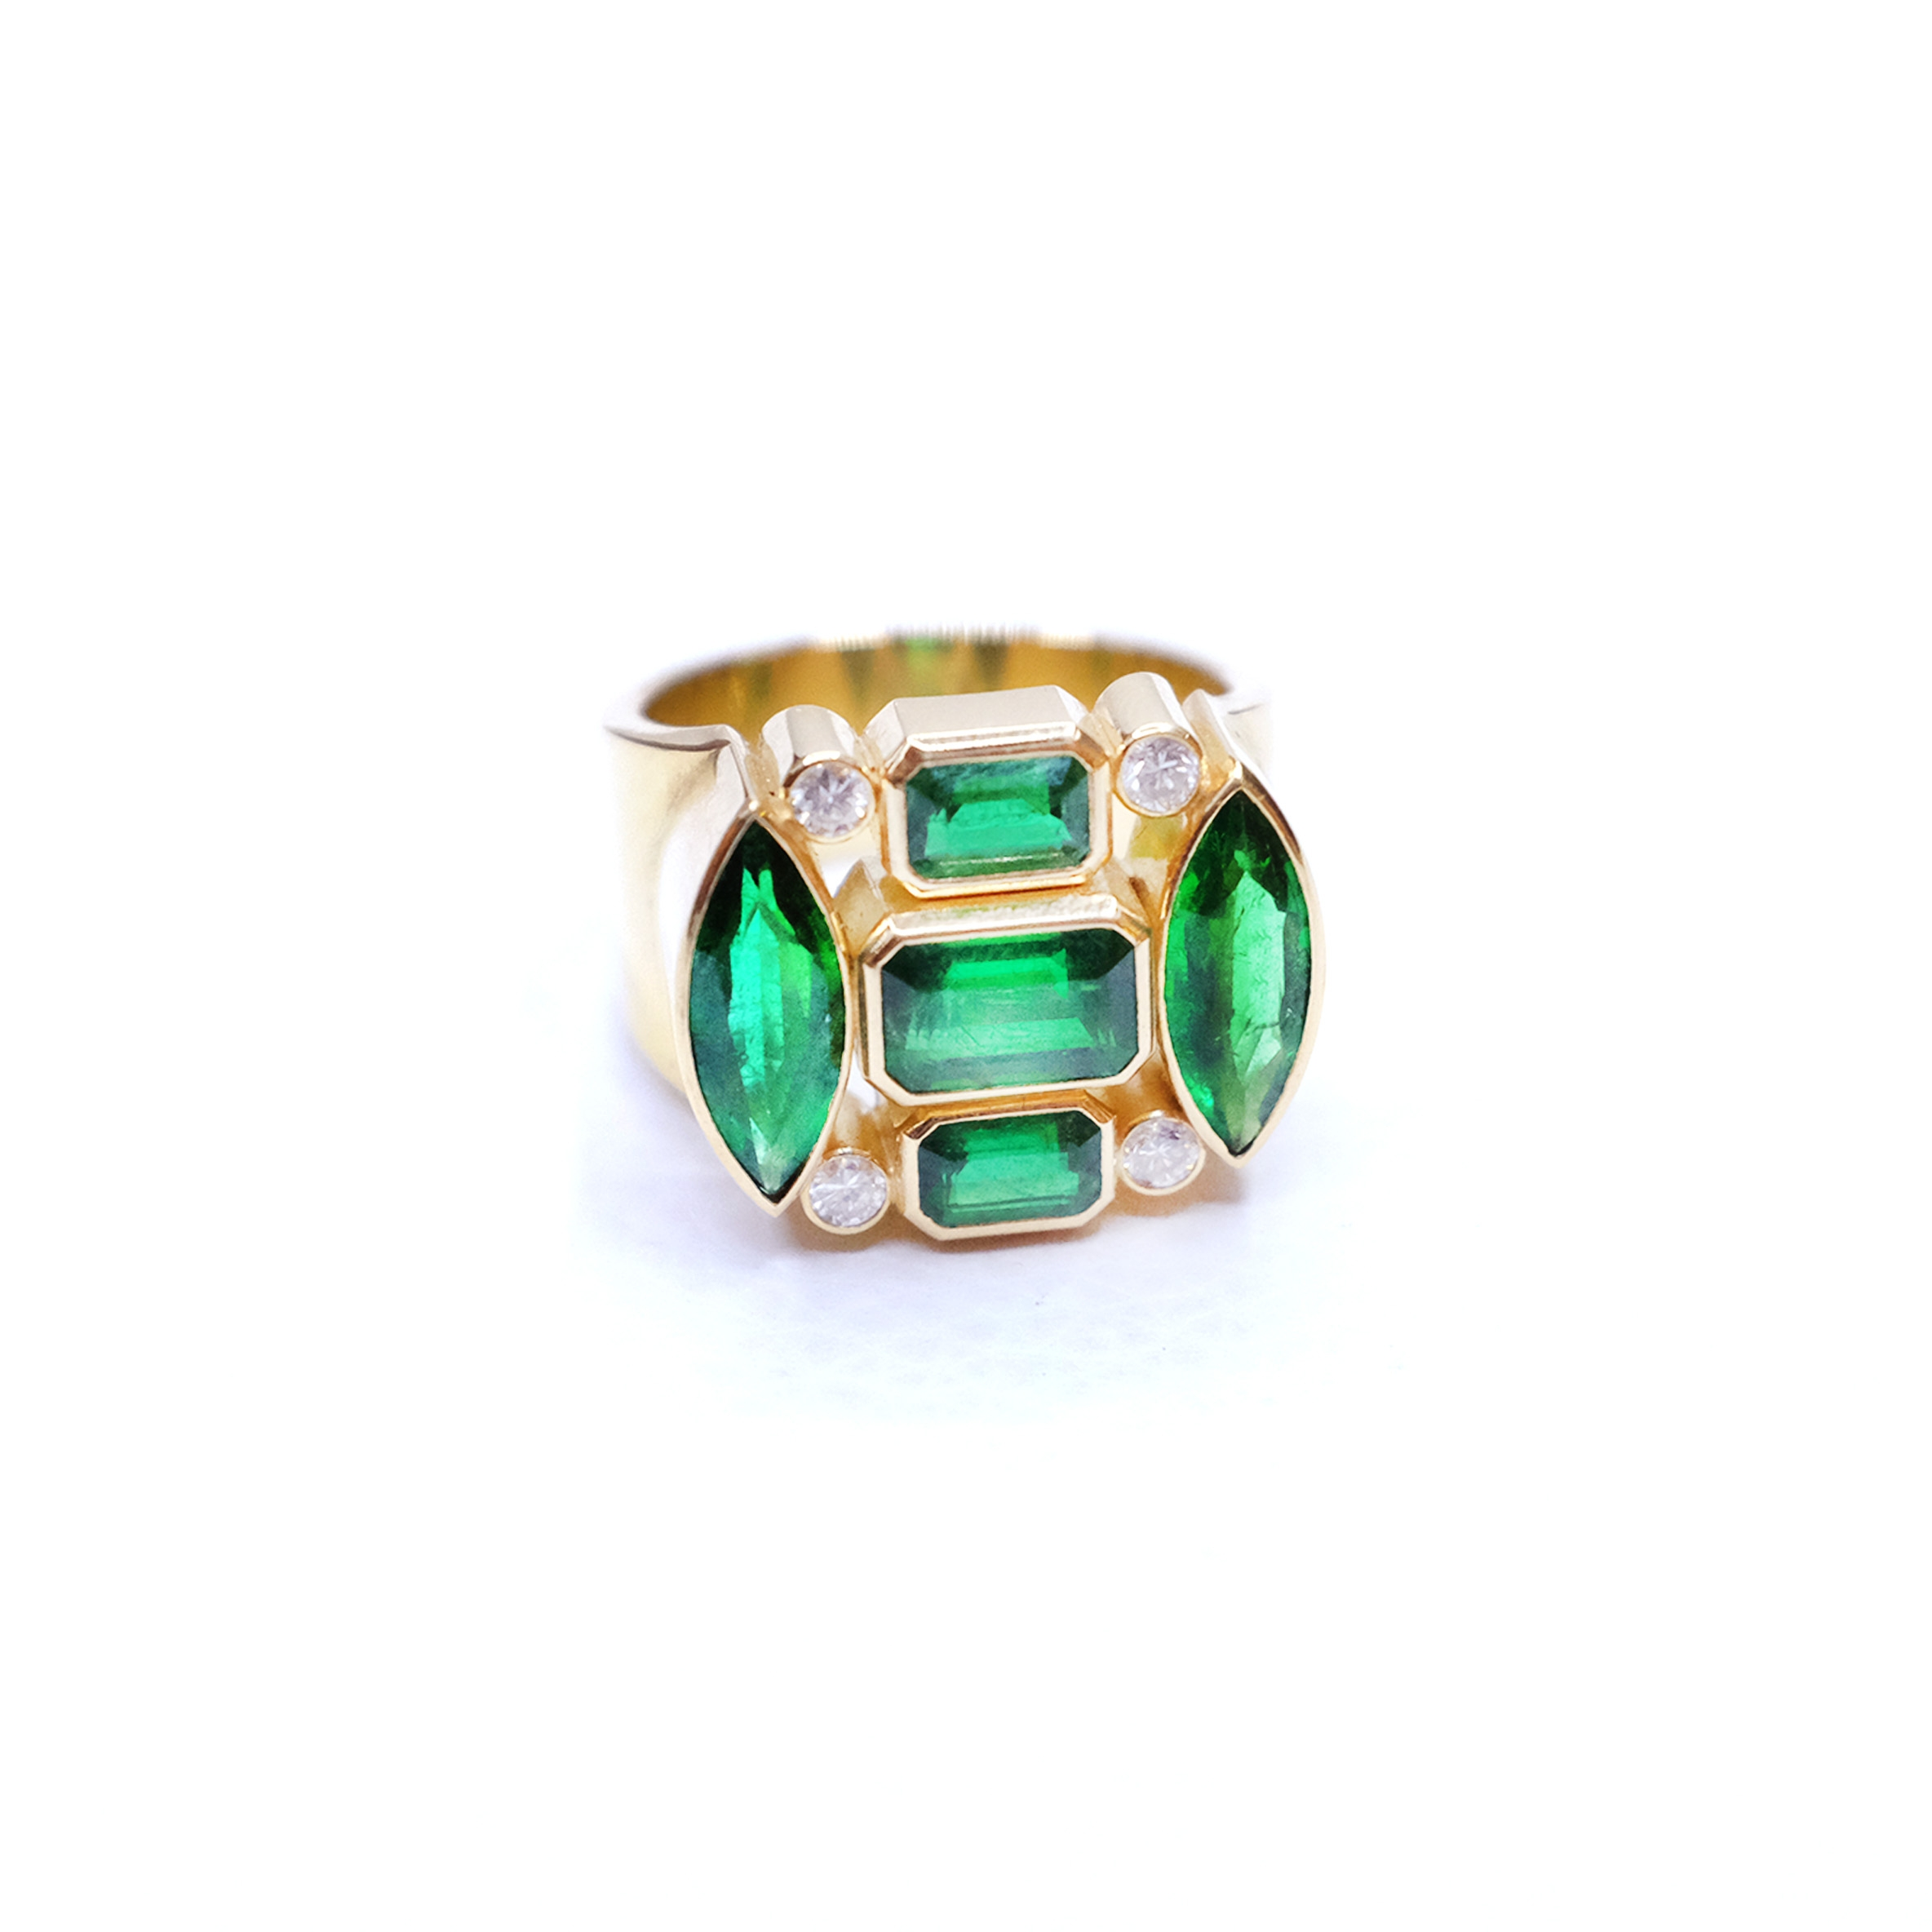 jewels and jewellery gold raw harper ring emerald gypsy bohemian emeral products rings festival indie